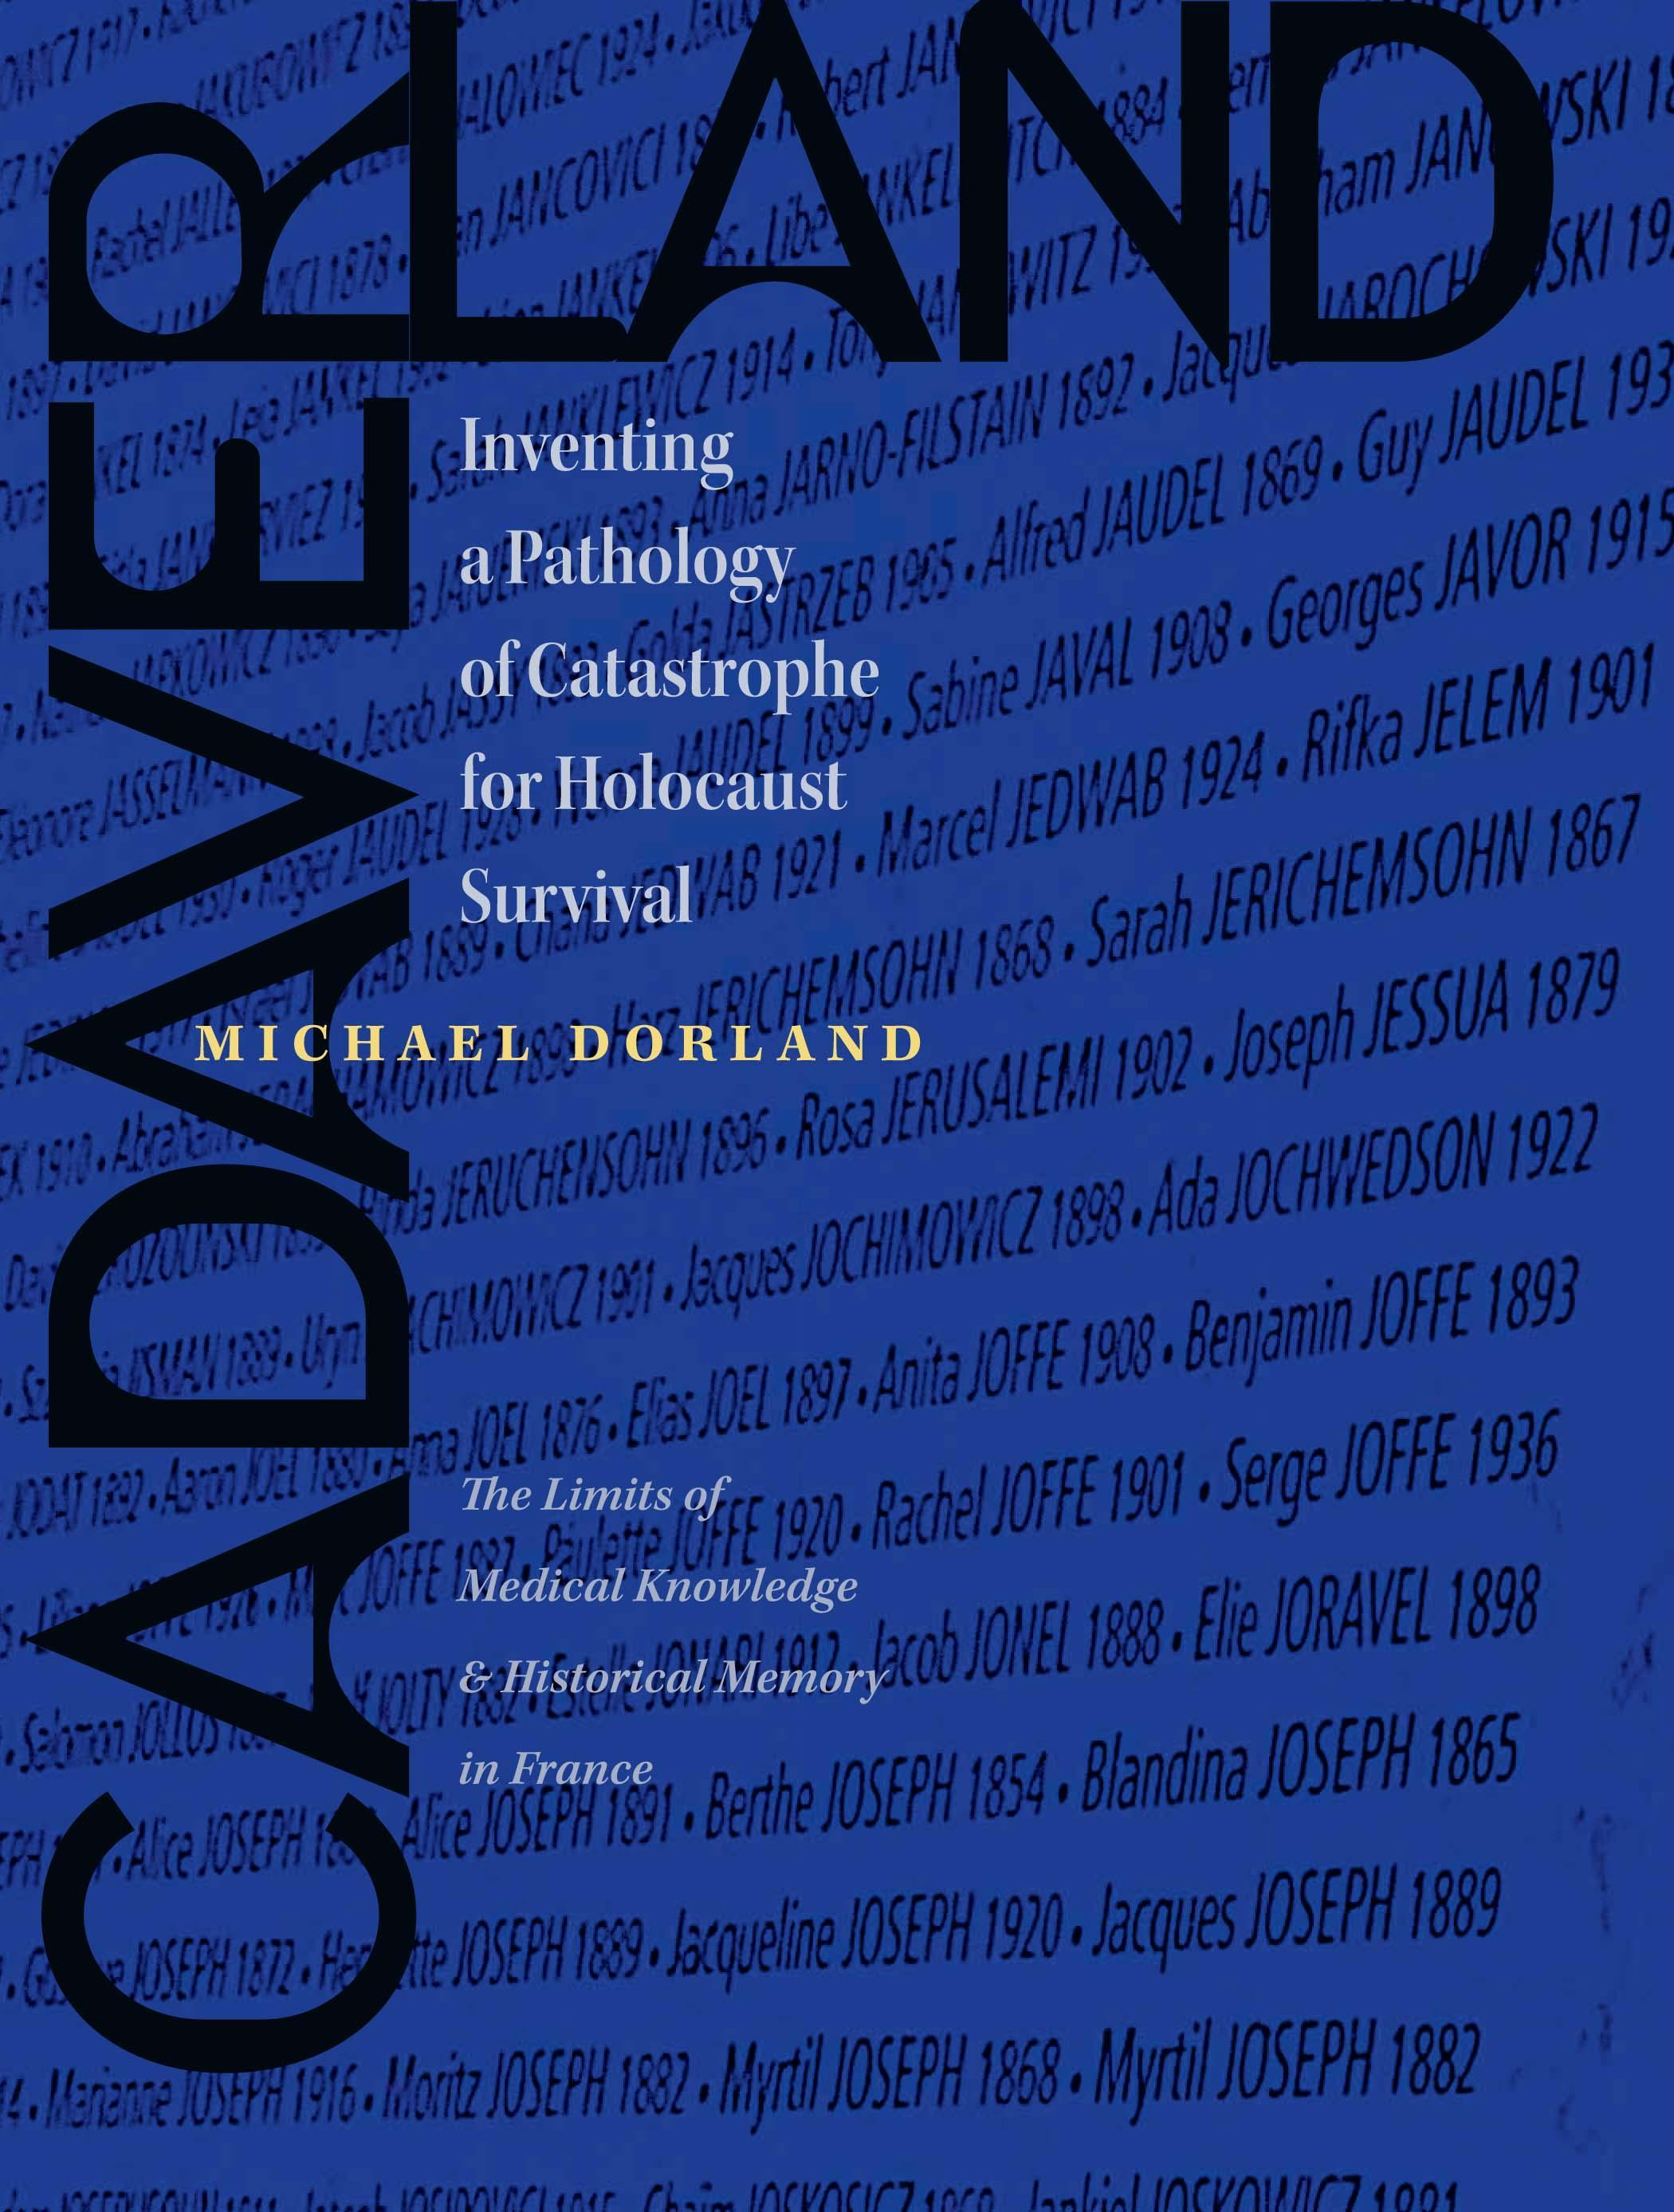 Cadaverland: Inventing a Pathology of Catastrophe for Holocaust Survival [The Limits of Medical Knowledge and Historical Memory in France] EB2370003485455